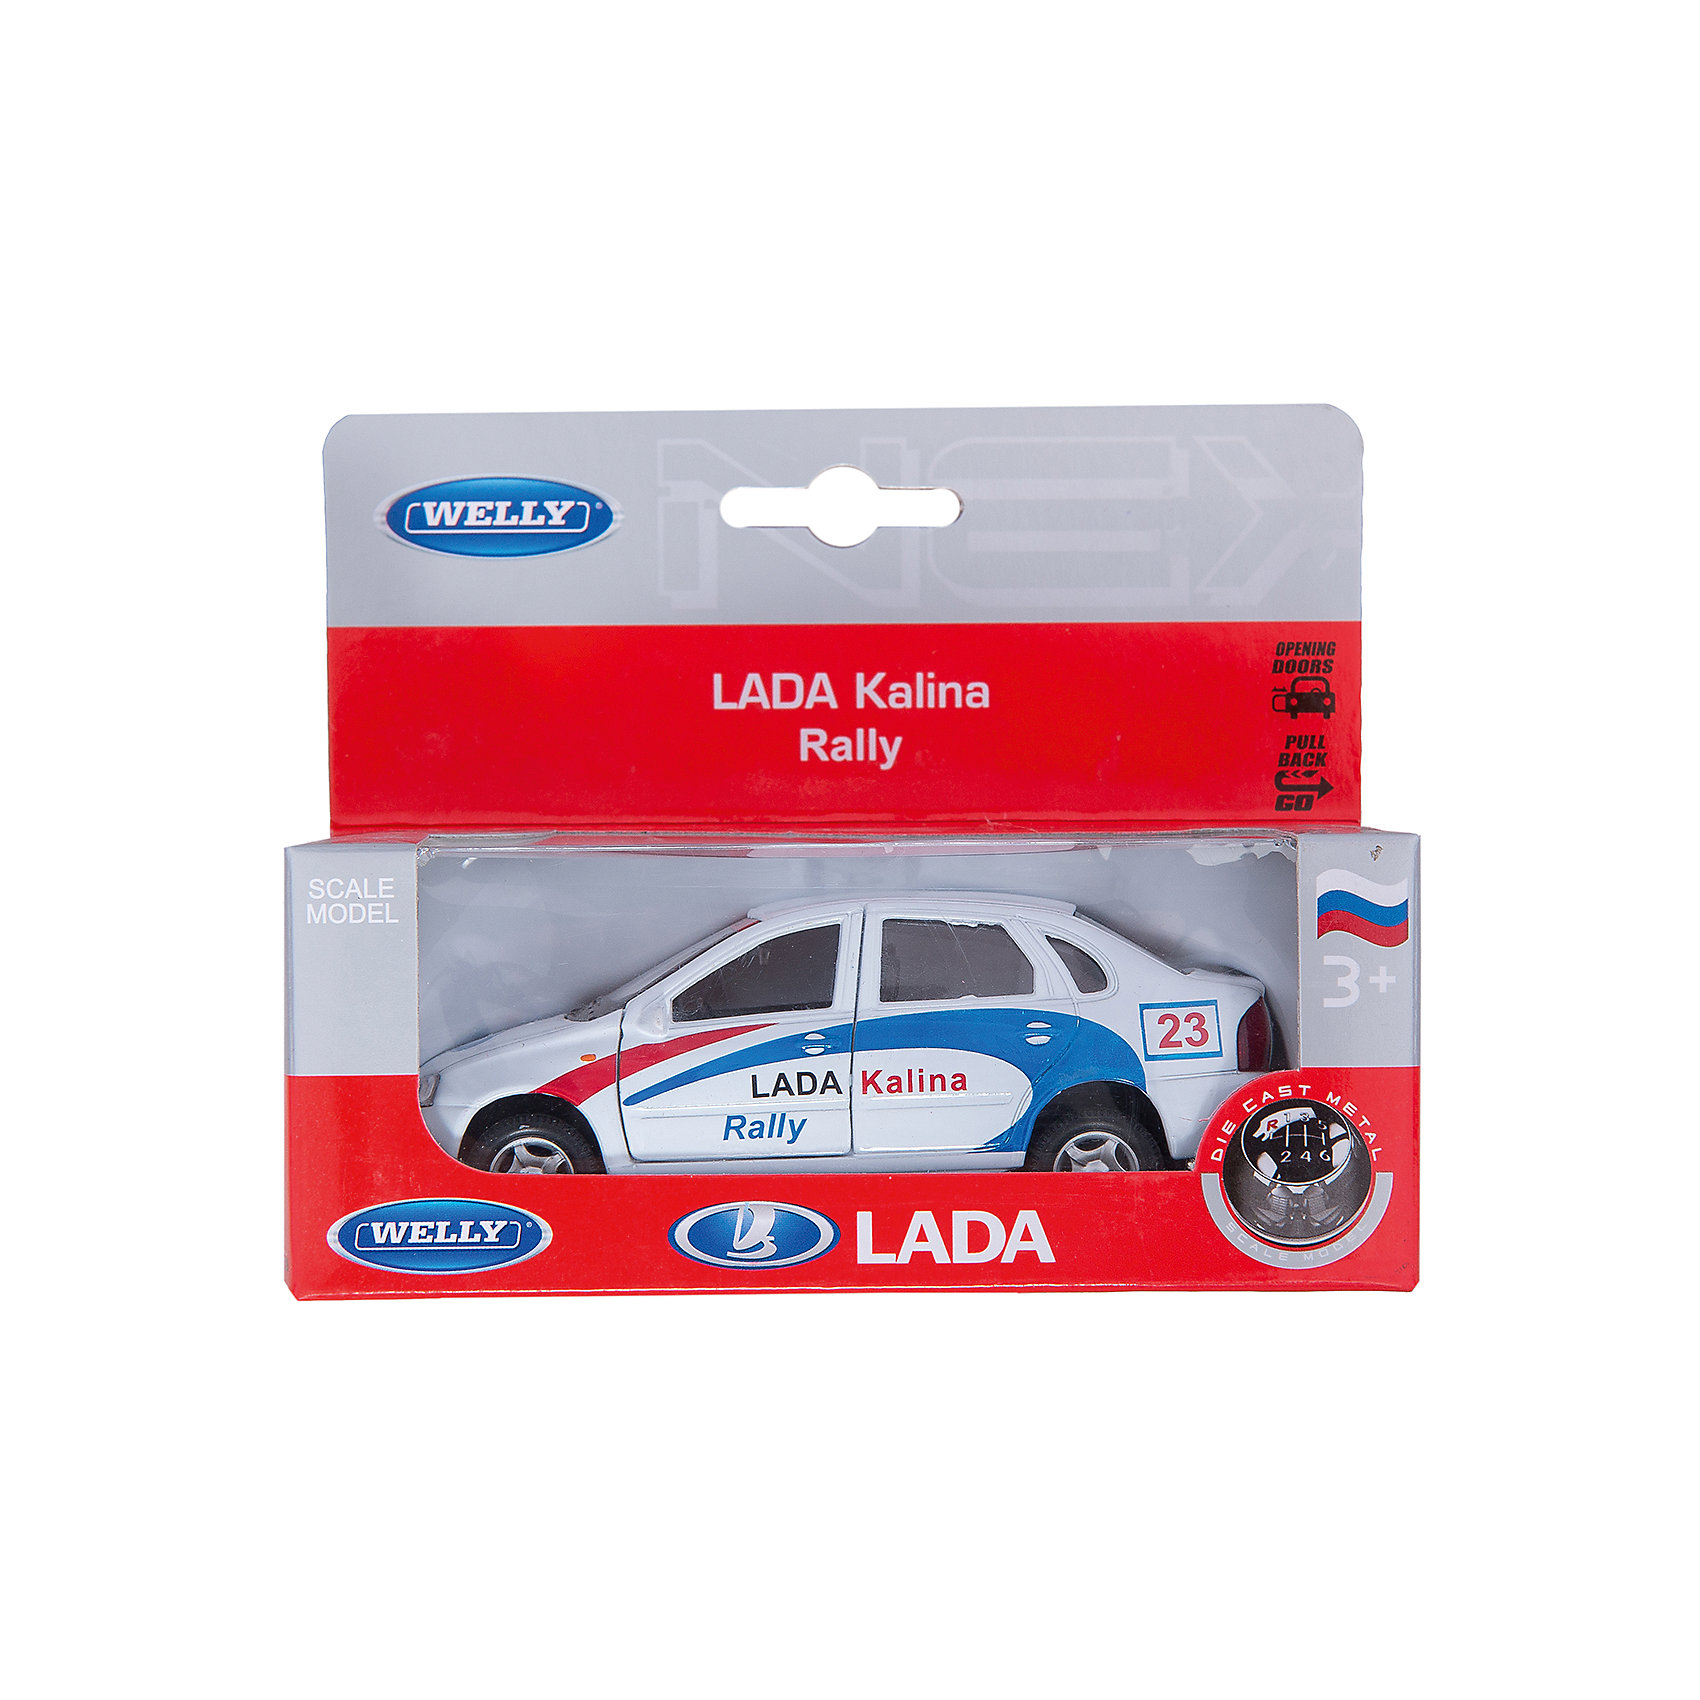 Welly Модель машины 1:34-39 LADA Kalina Rally, Welly автомобиль welly lada kalina rally 1 34 39 белый 42383ry